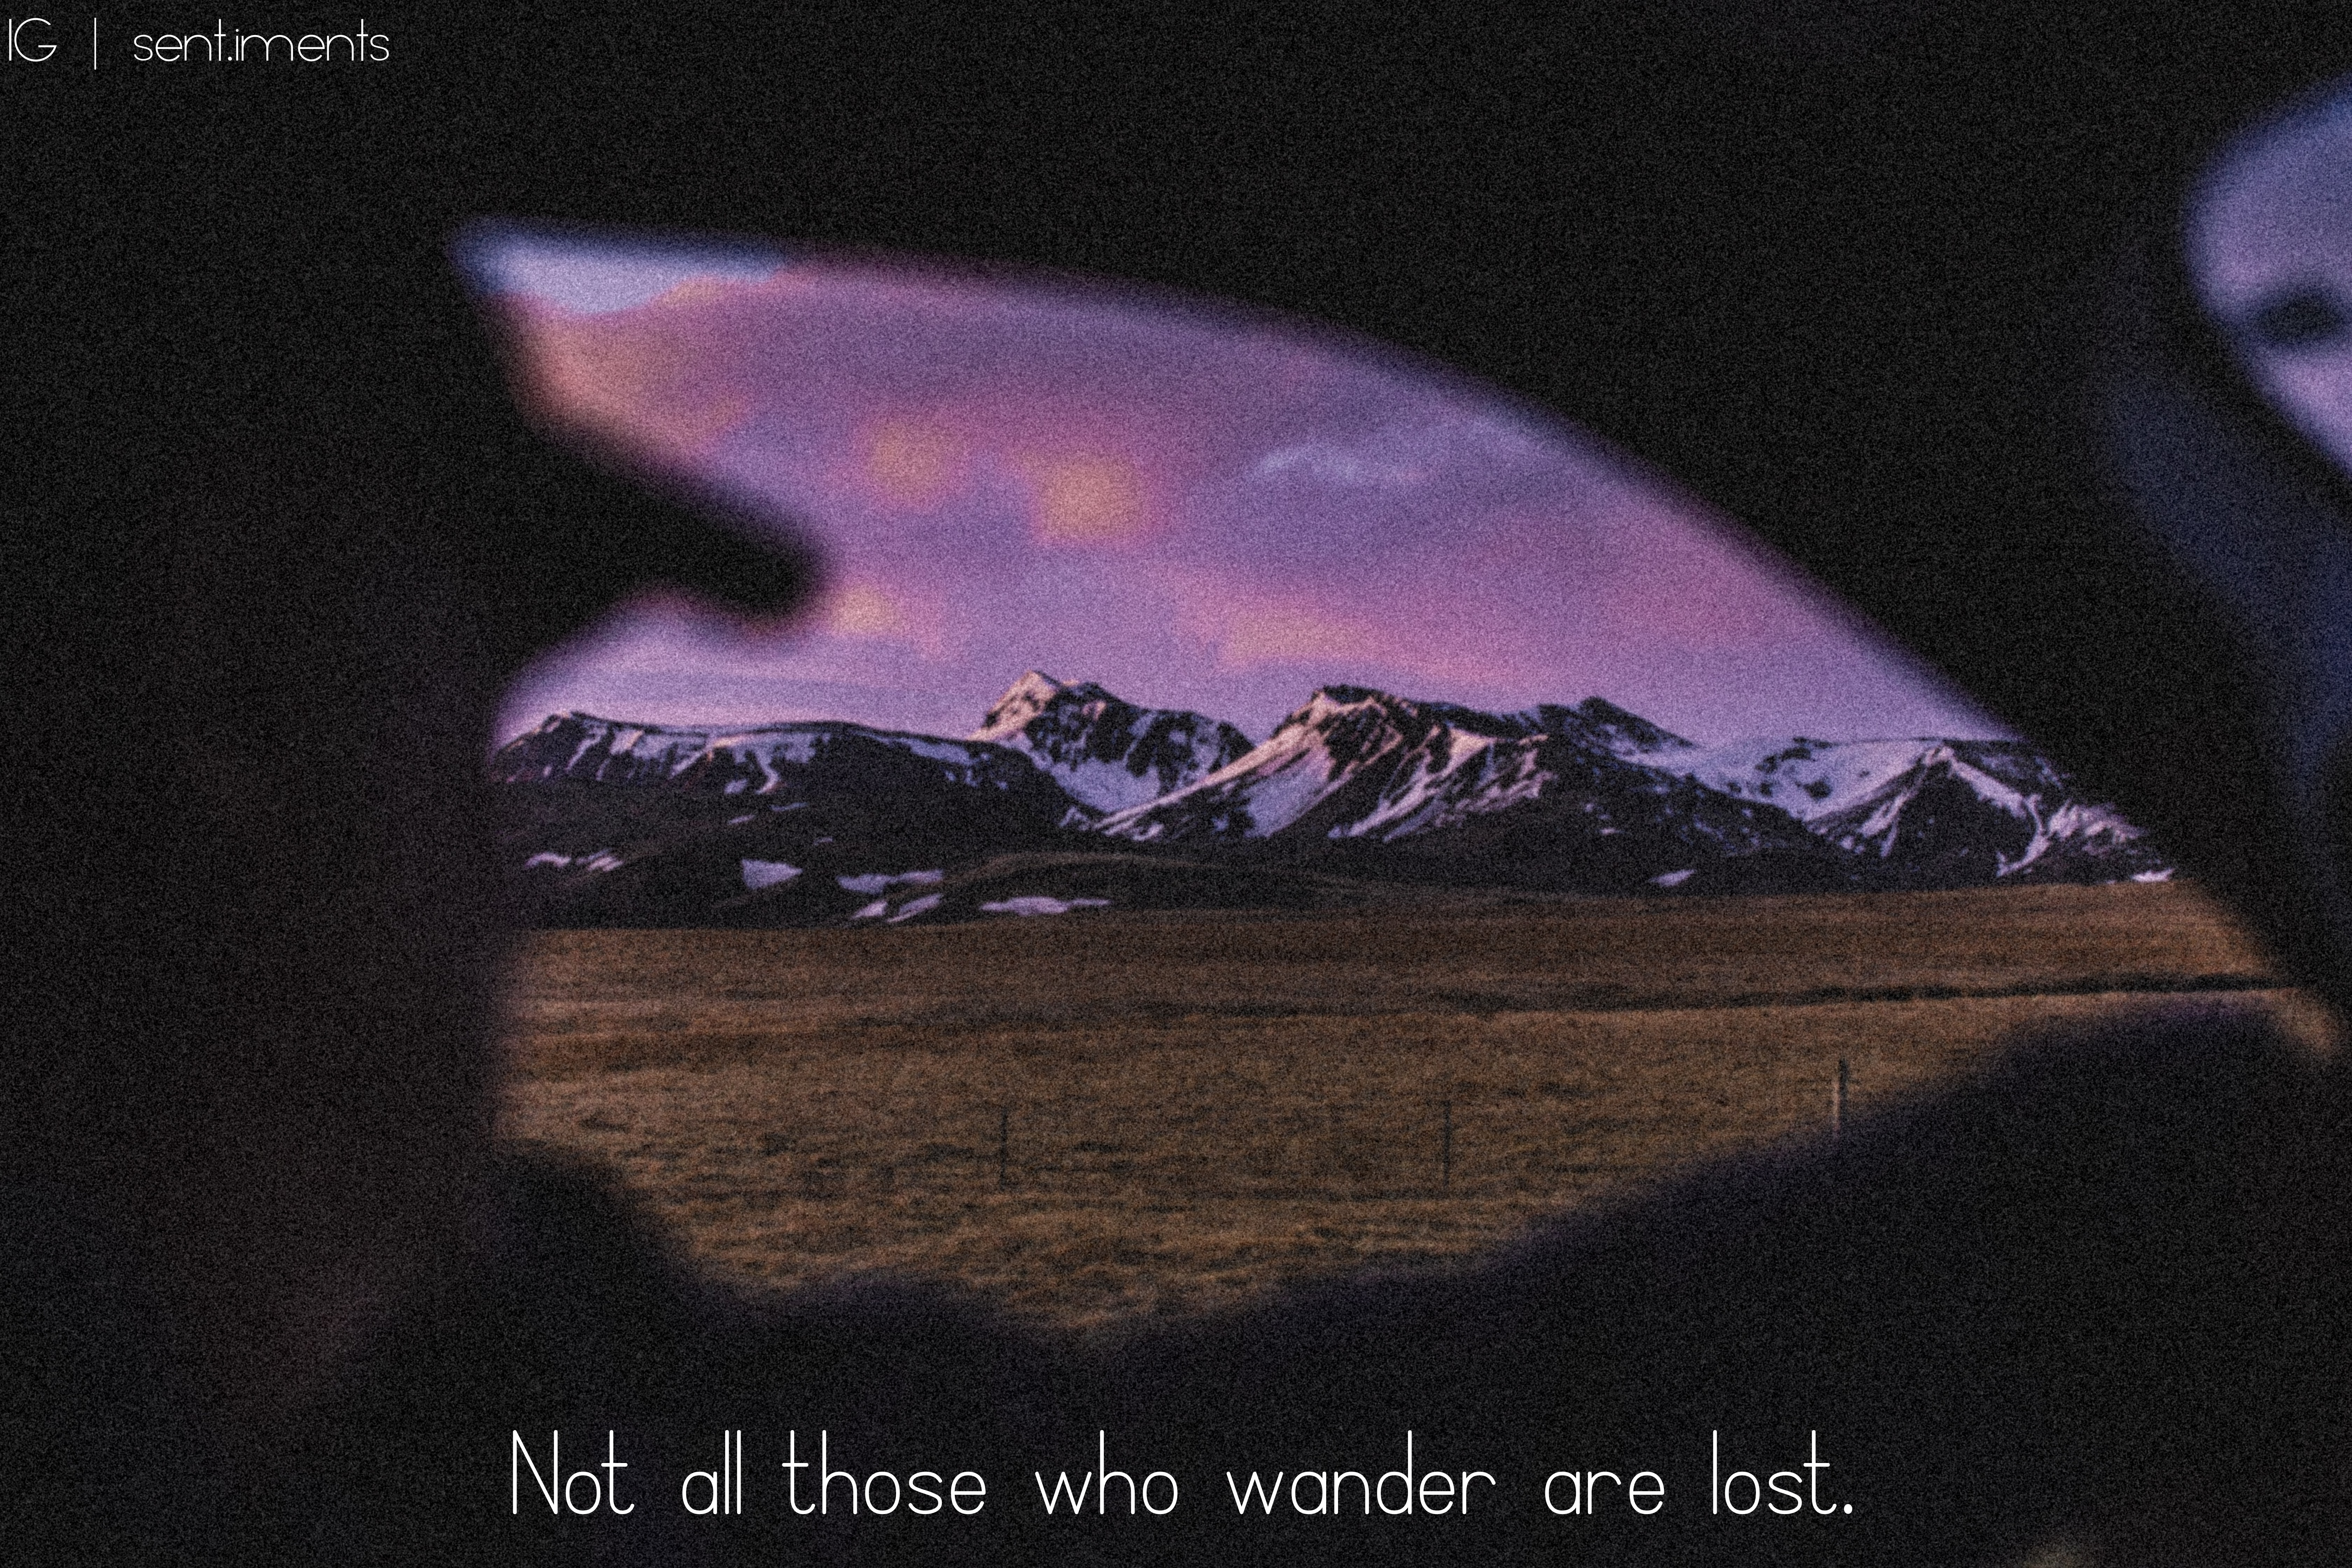 """Not all those who wander are lost"" by J.R.R Tolkien [6720 X 4480]"